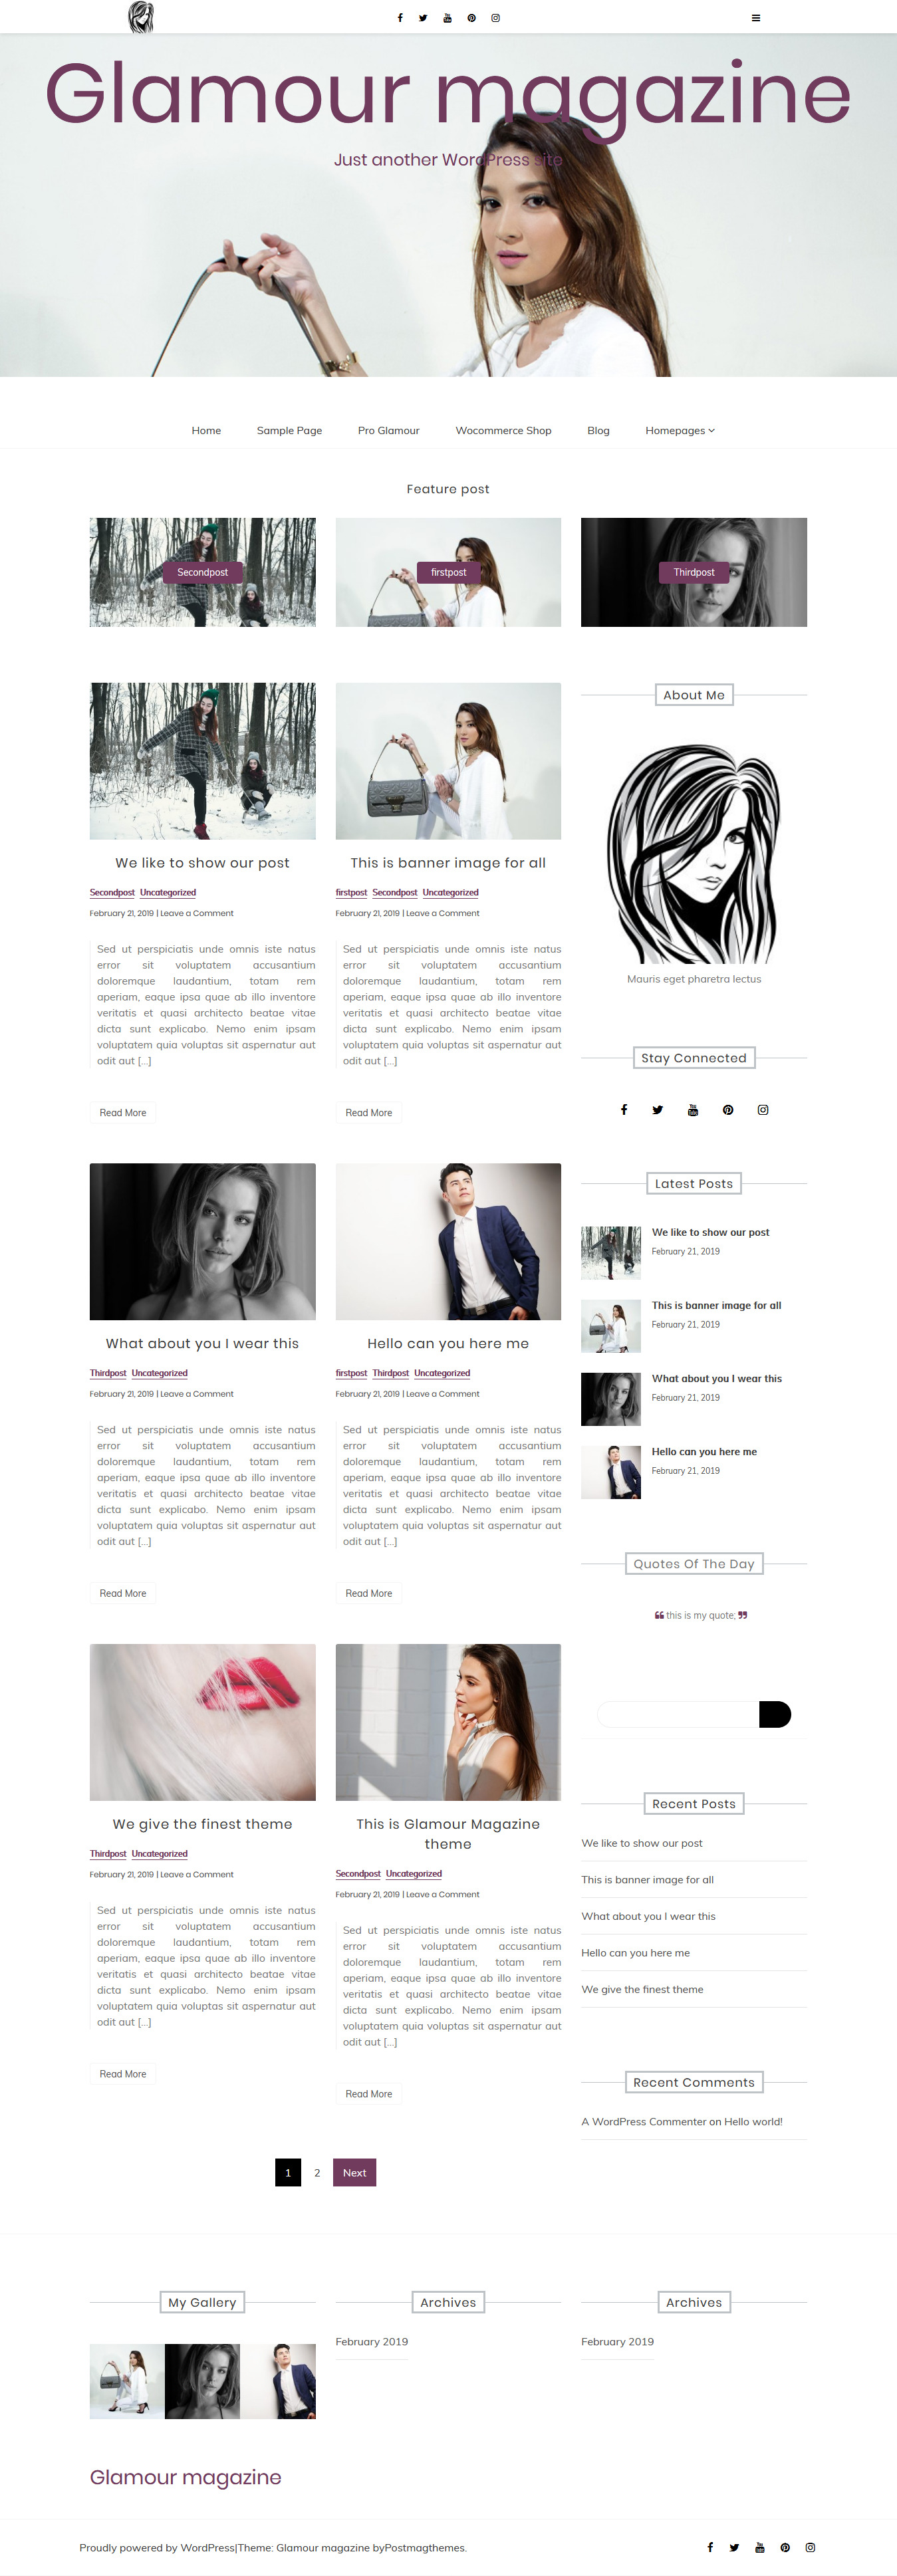 Glamour magazine - Best Free Review WordPress Theme